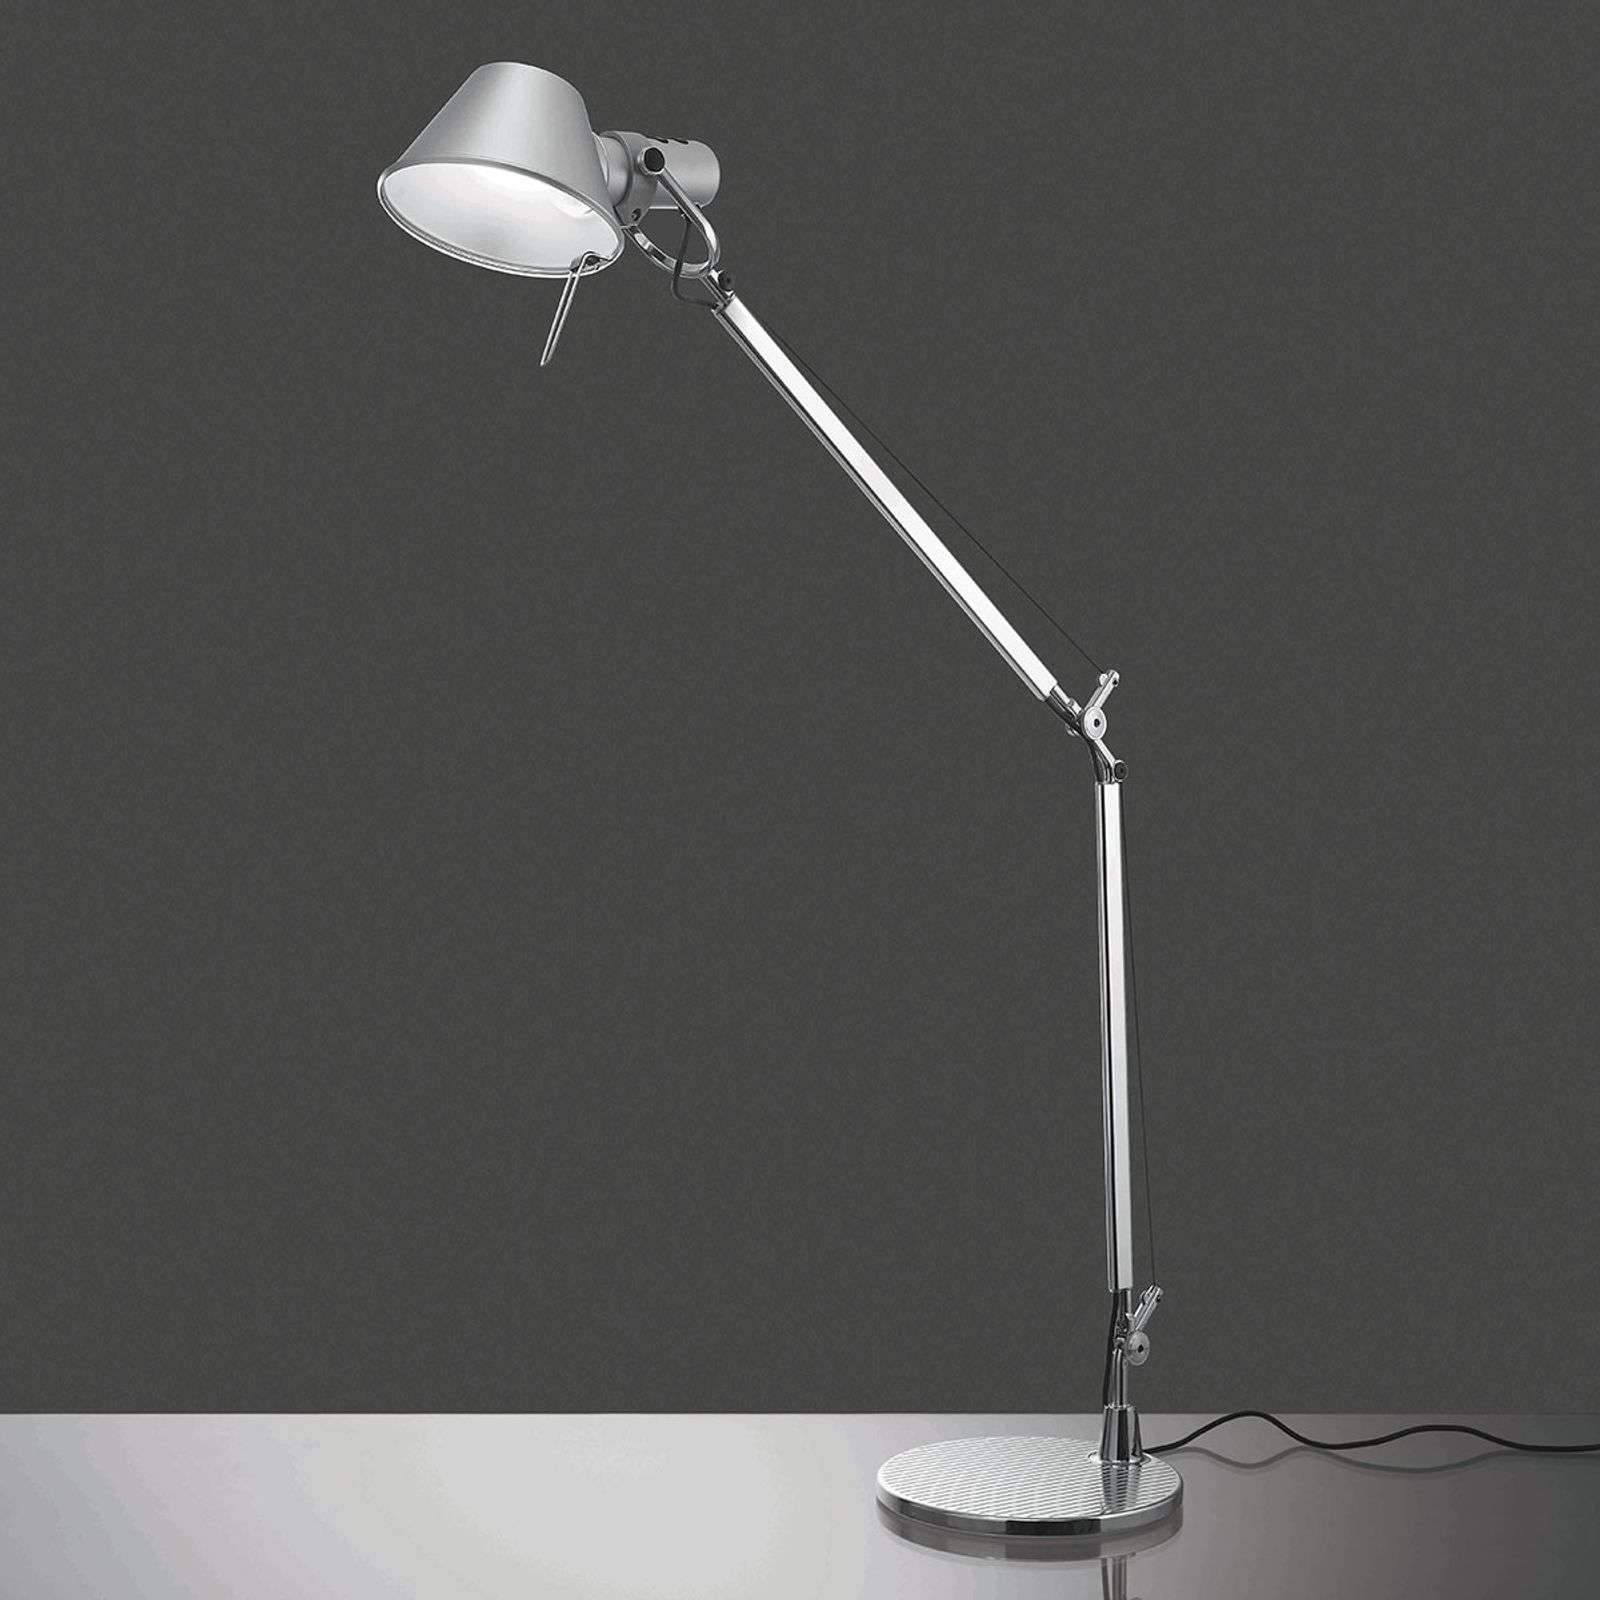 Artemide Tolomeo tafellamp LED Tunable White